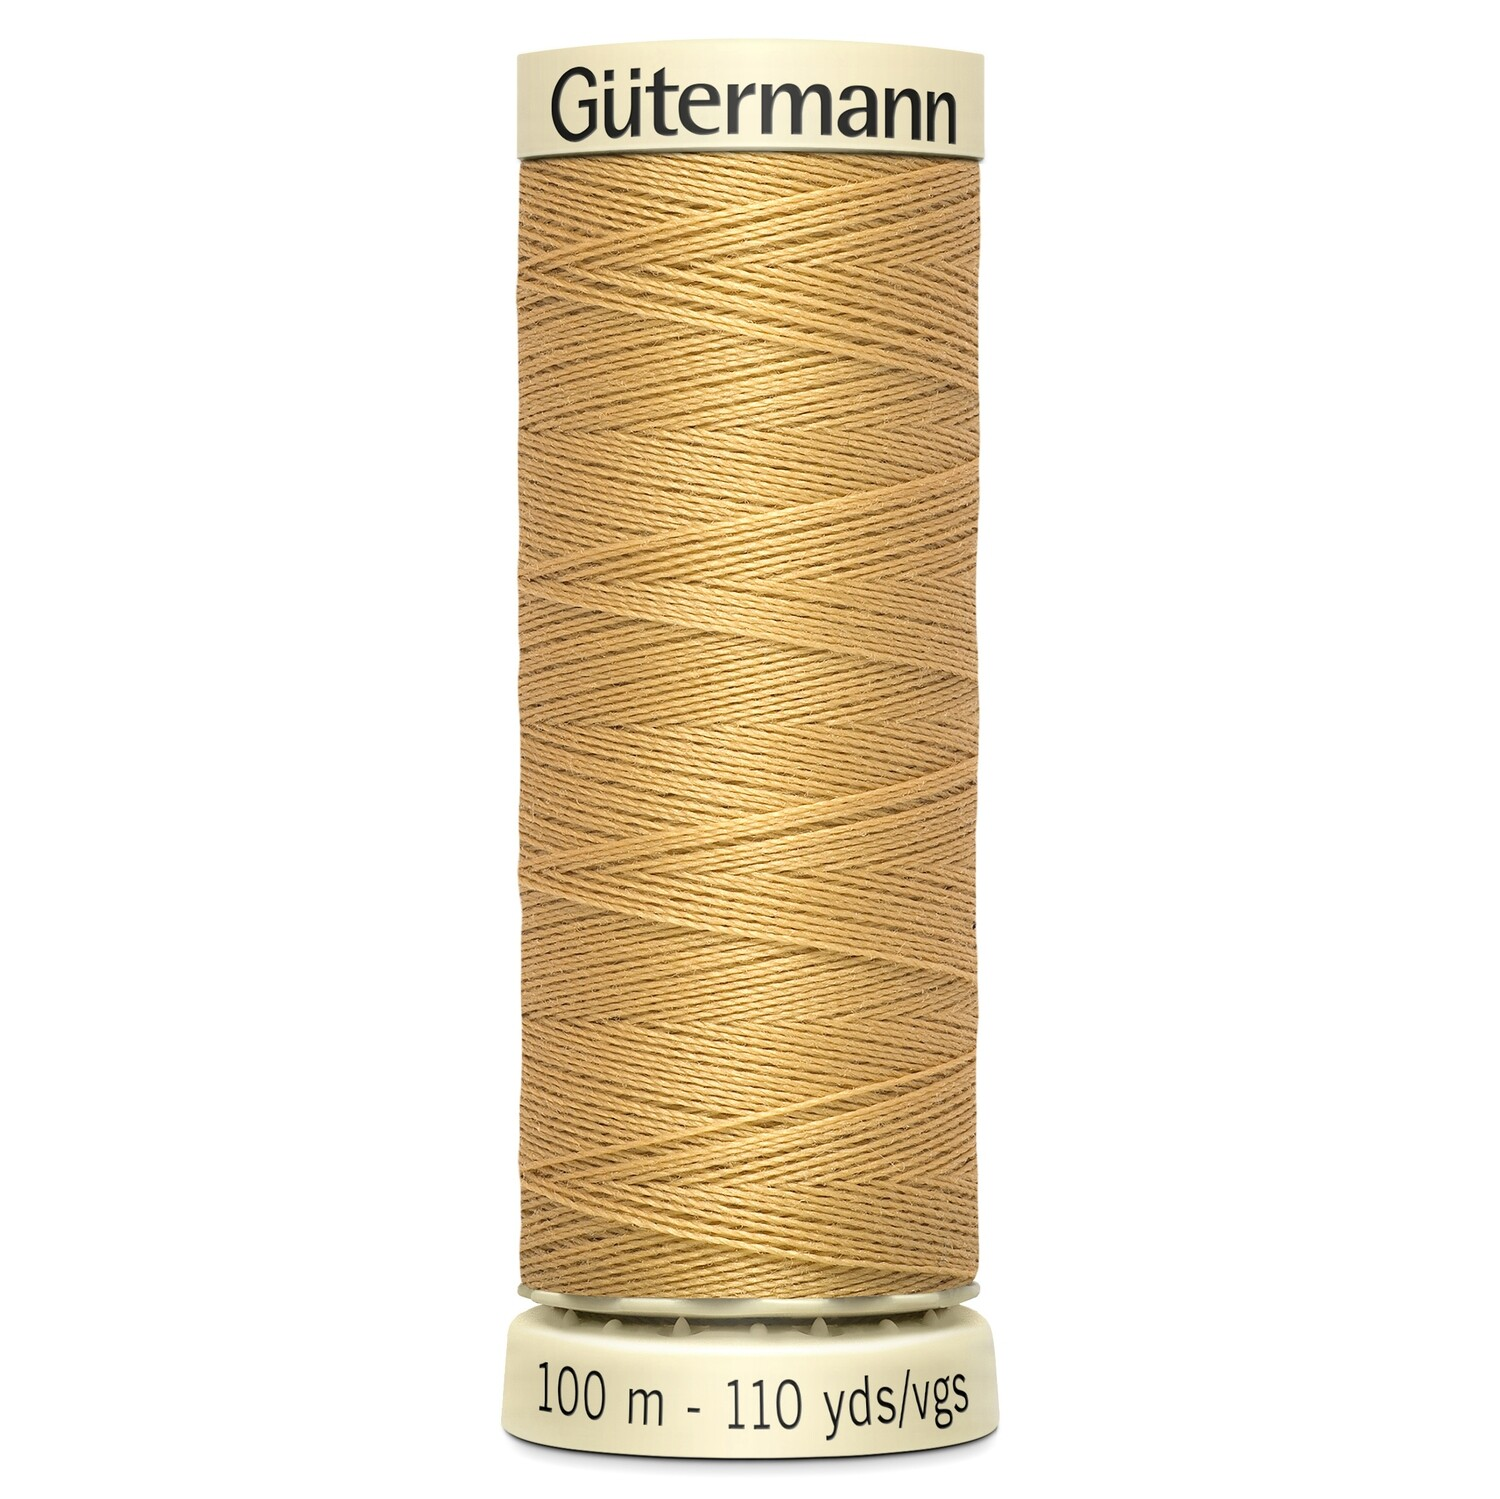 Gutermann Sew-All thread 893